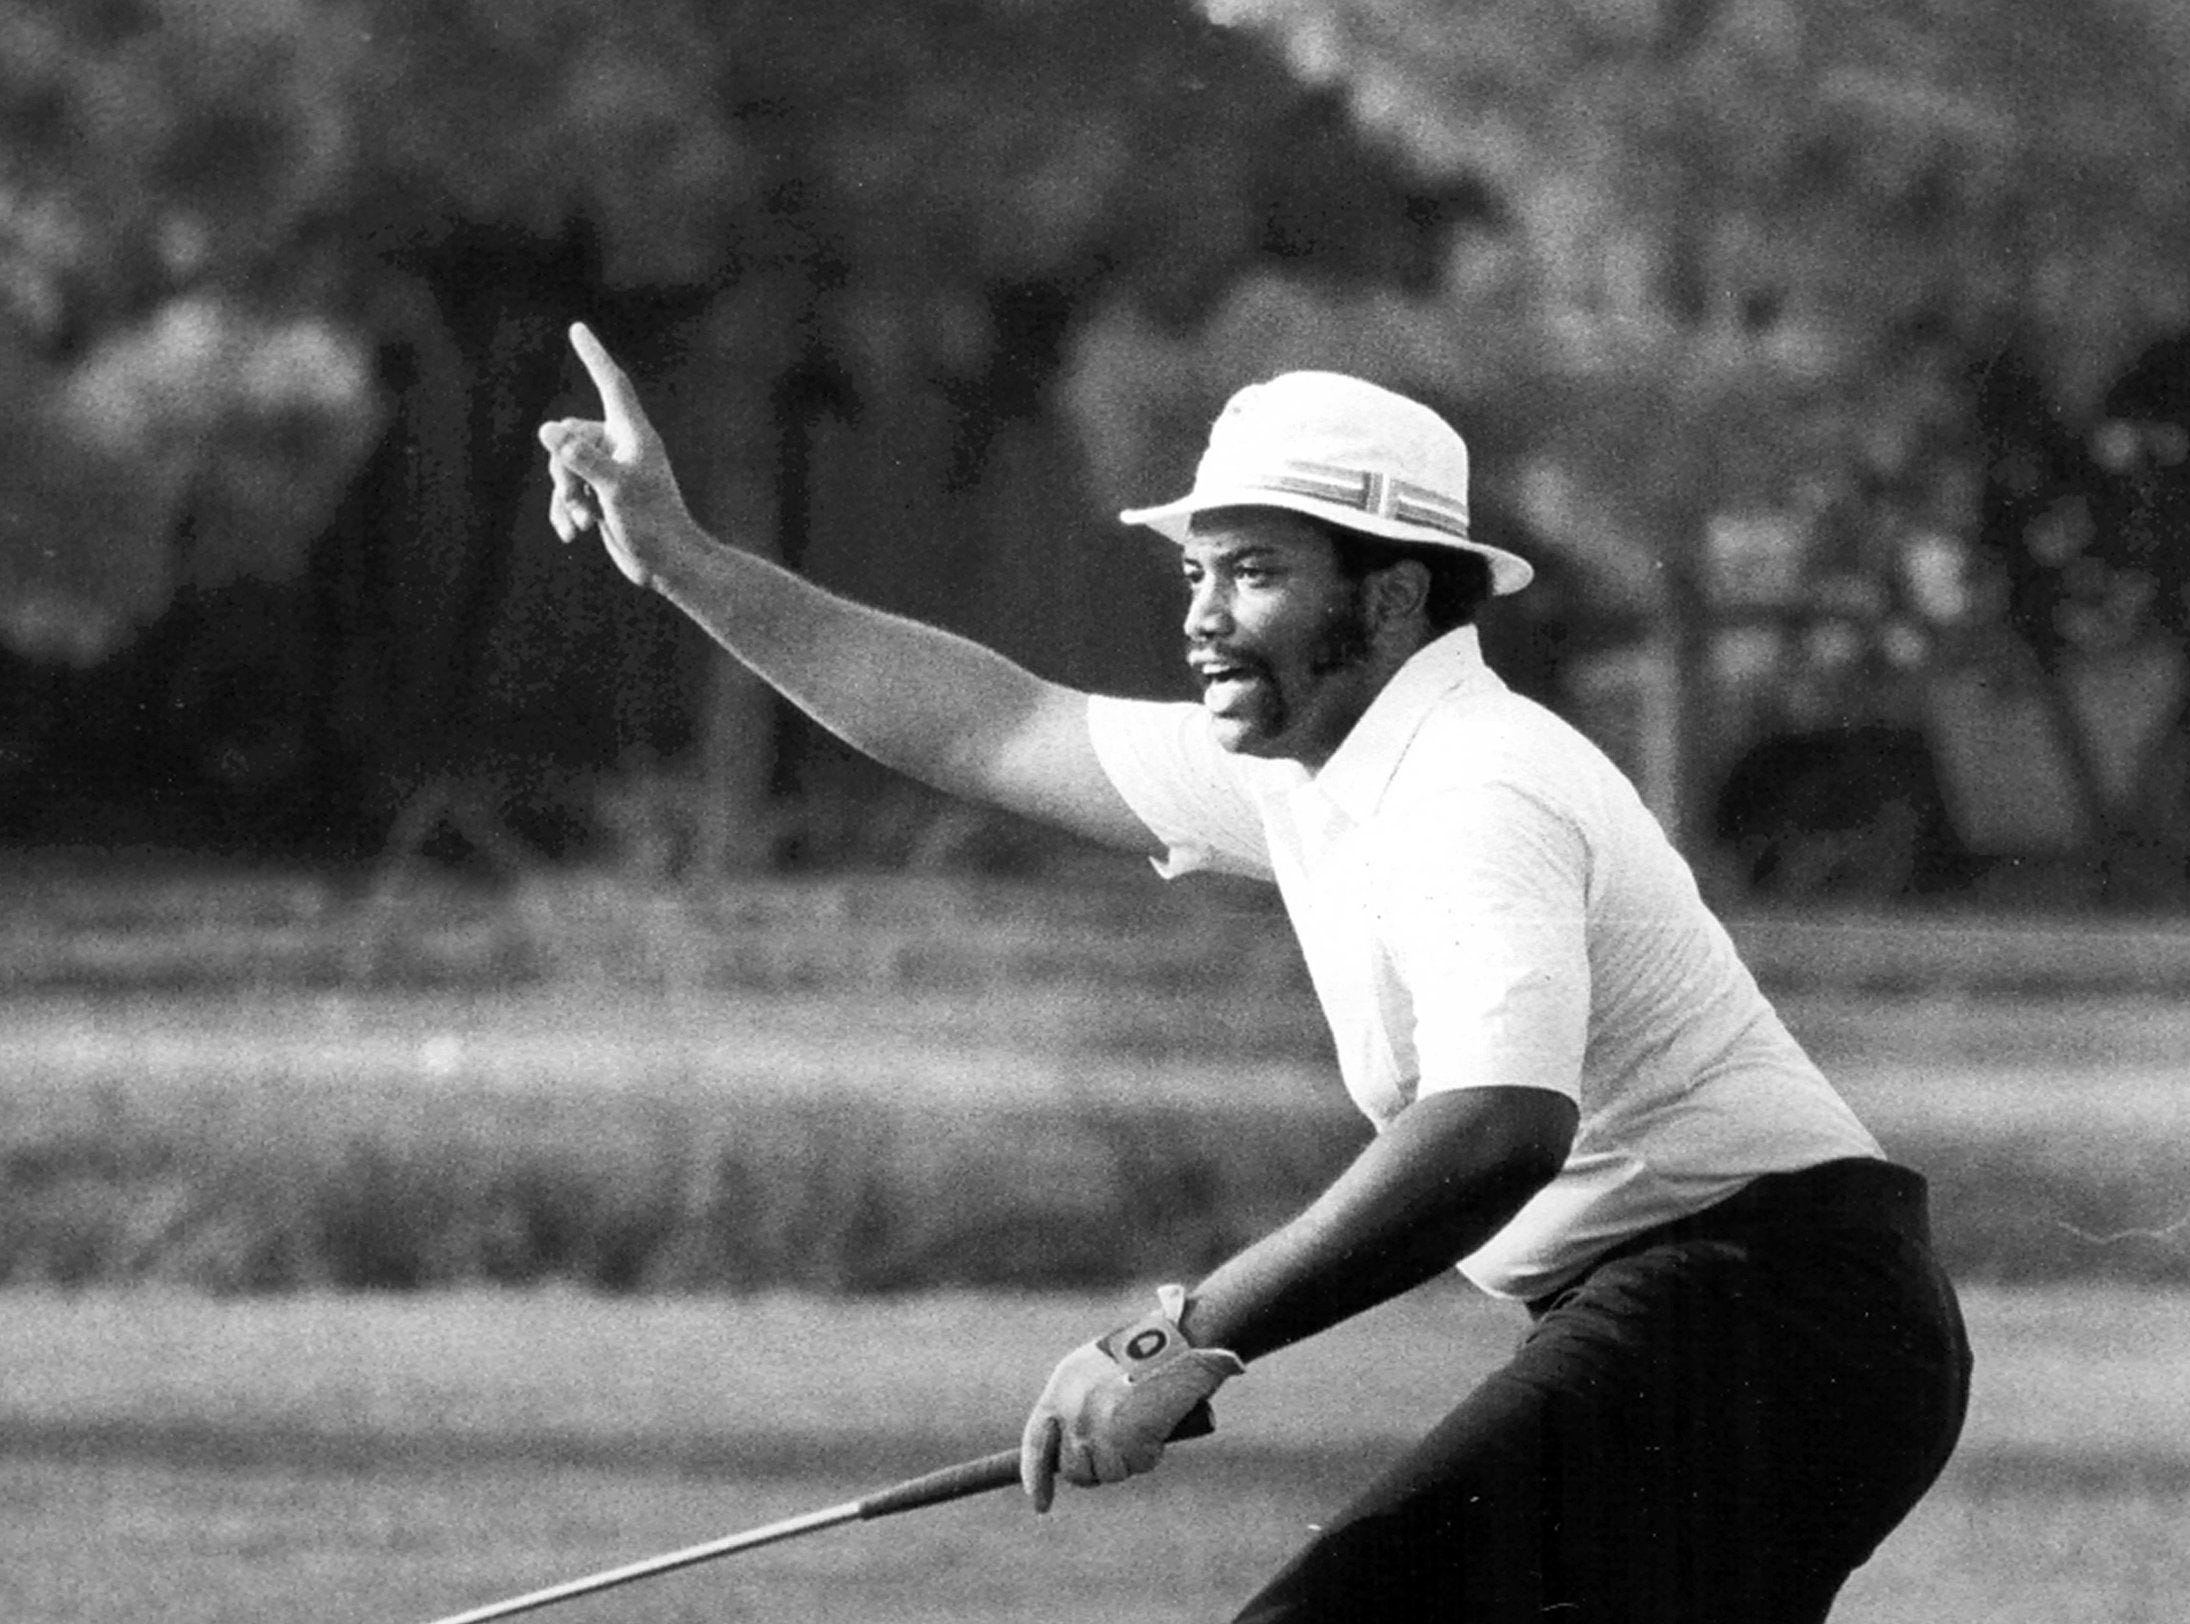 Randy Perry reacts to making a birdie putt at the seventeenth green during the Memphis PubLinx Tournament at Fox Meadows  on 18 Jun 1982.  The 28-year-old teacher at Georgian Hills Junior High School fired a 36-hole total of four under par, 138 and then defeated Keith McKamie and George Johnson on the first hole of a sudden-death playoff.